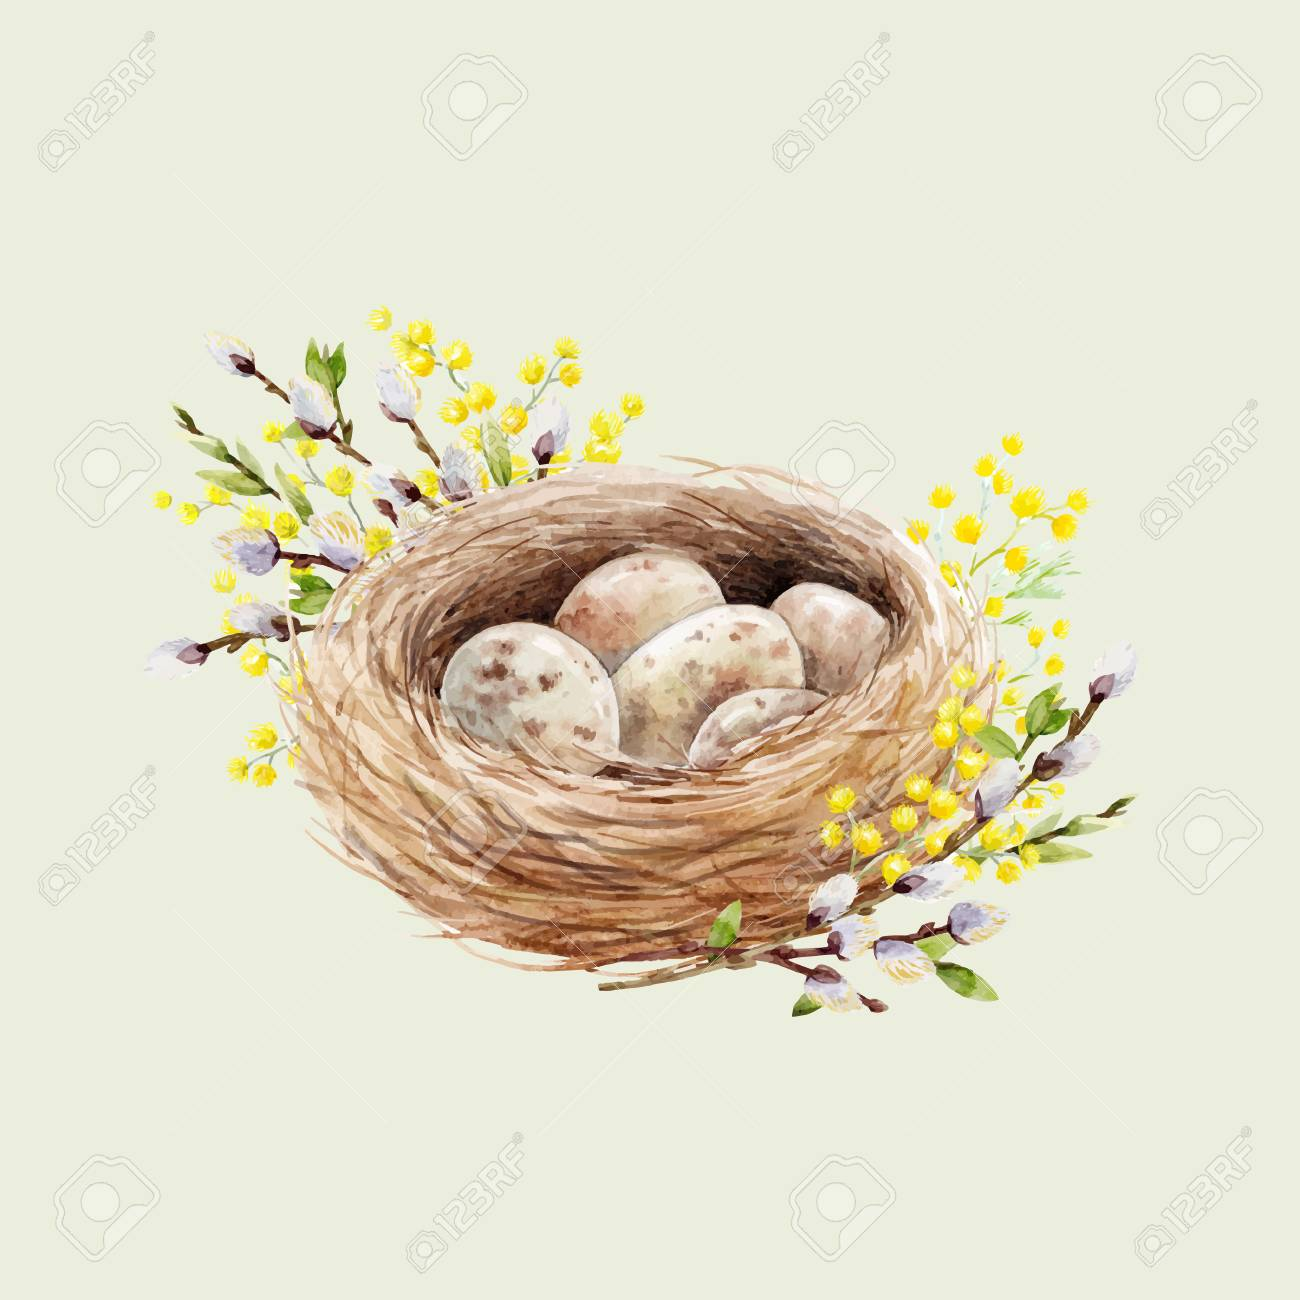 Watercolor bird nest with eggs Vector illustration. - 94038858